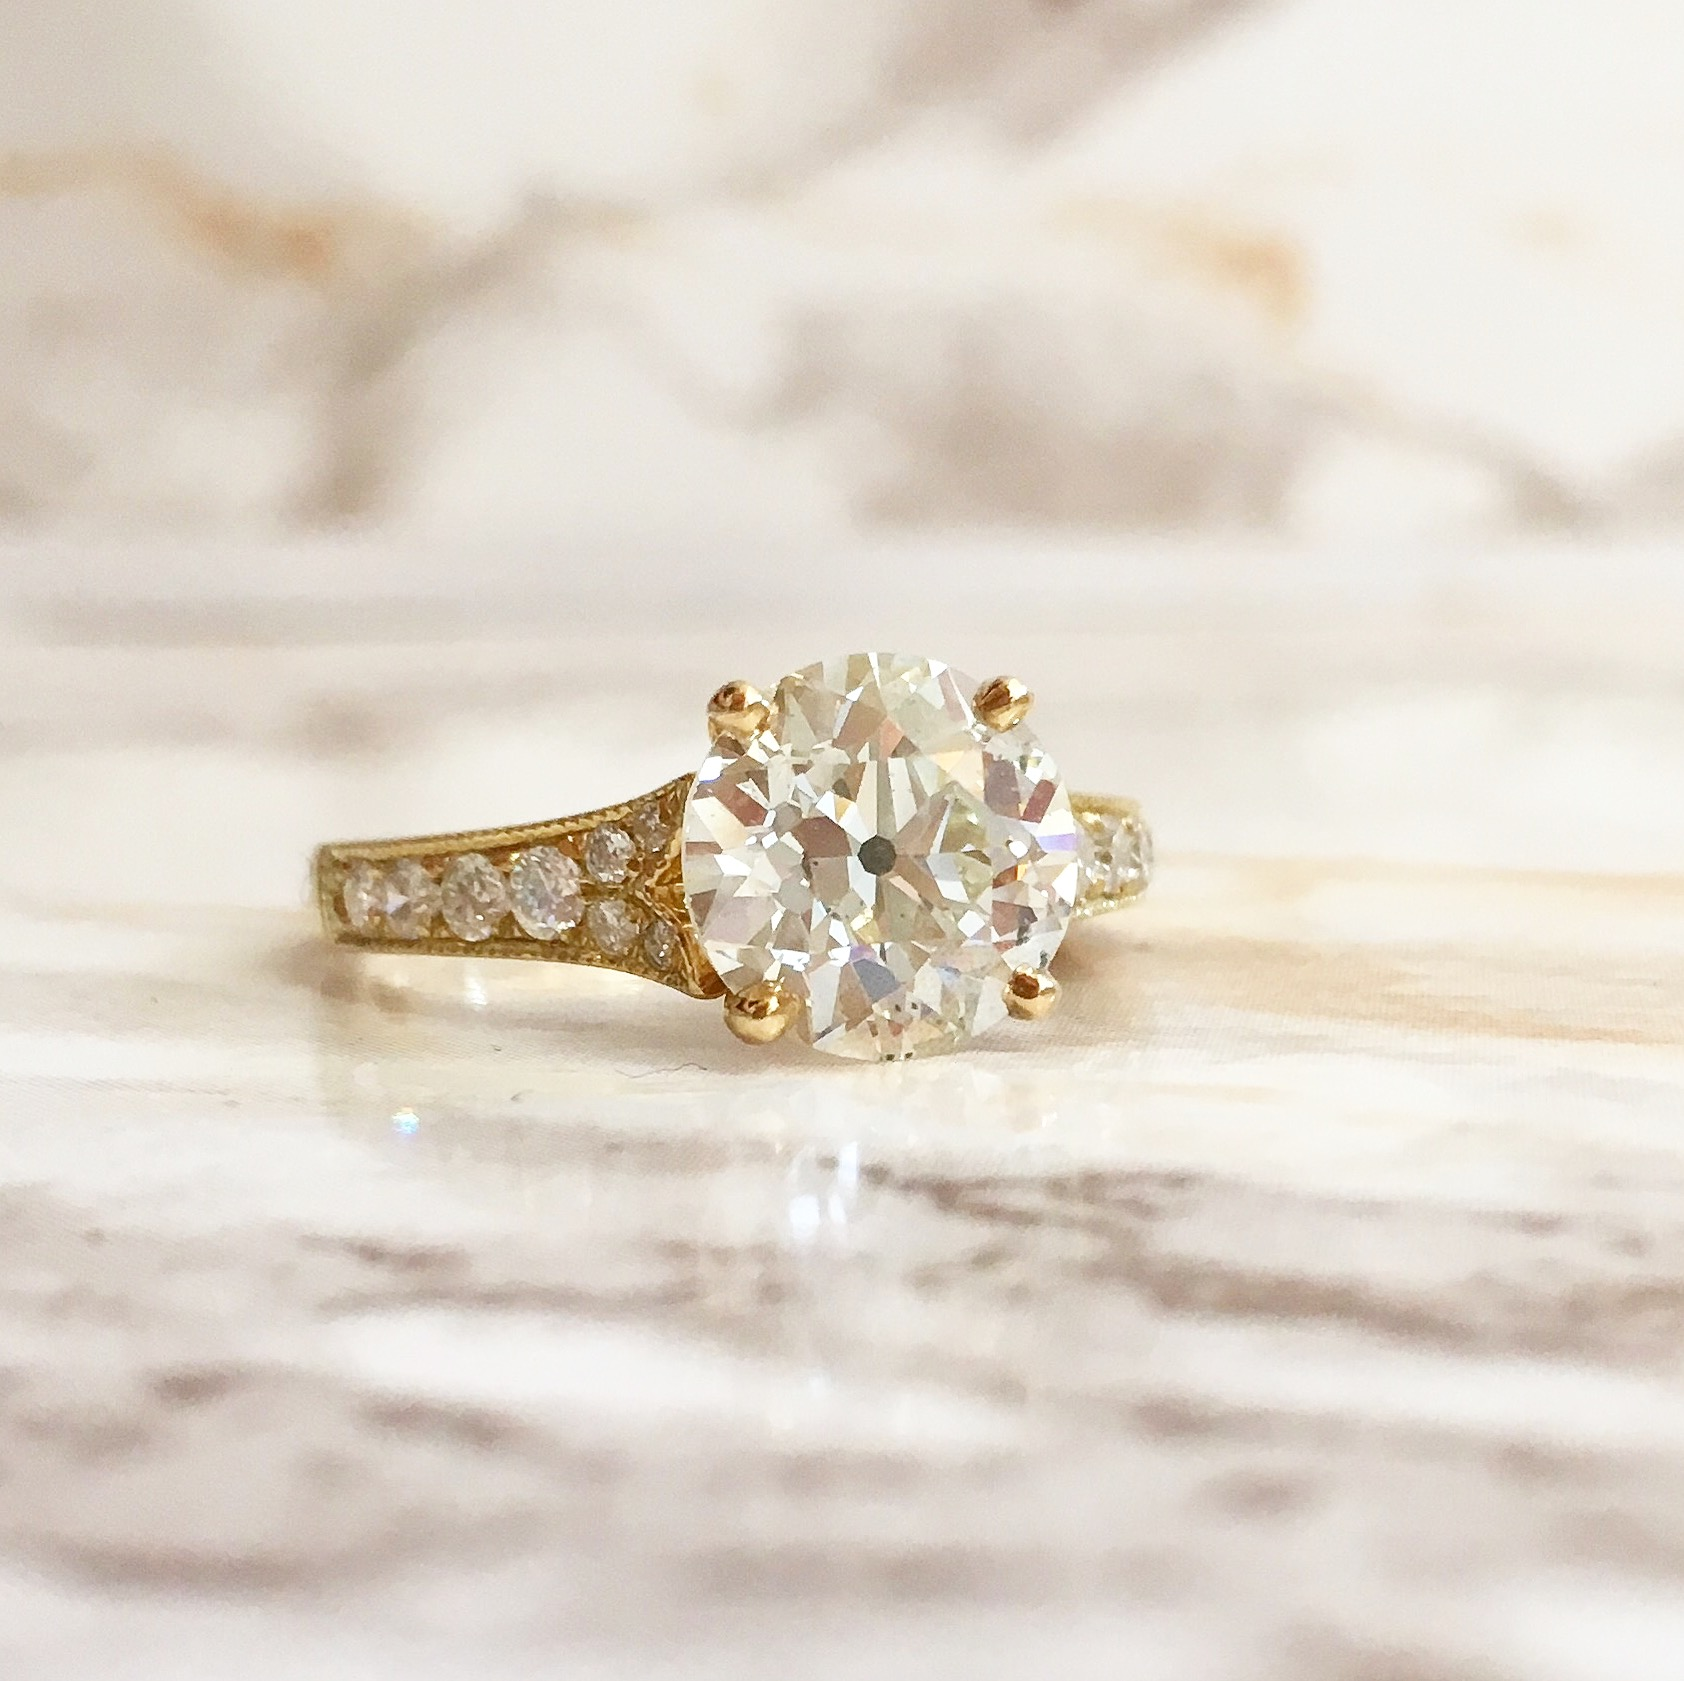 Beautiful 2.46 carat Old European cut diamond set in a yellow gold and diamond detail mounting. Shop this ring  HERE